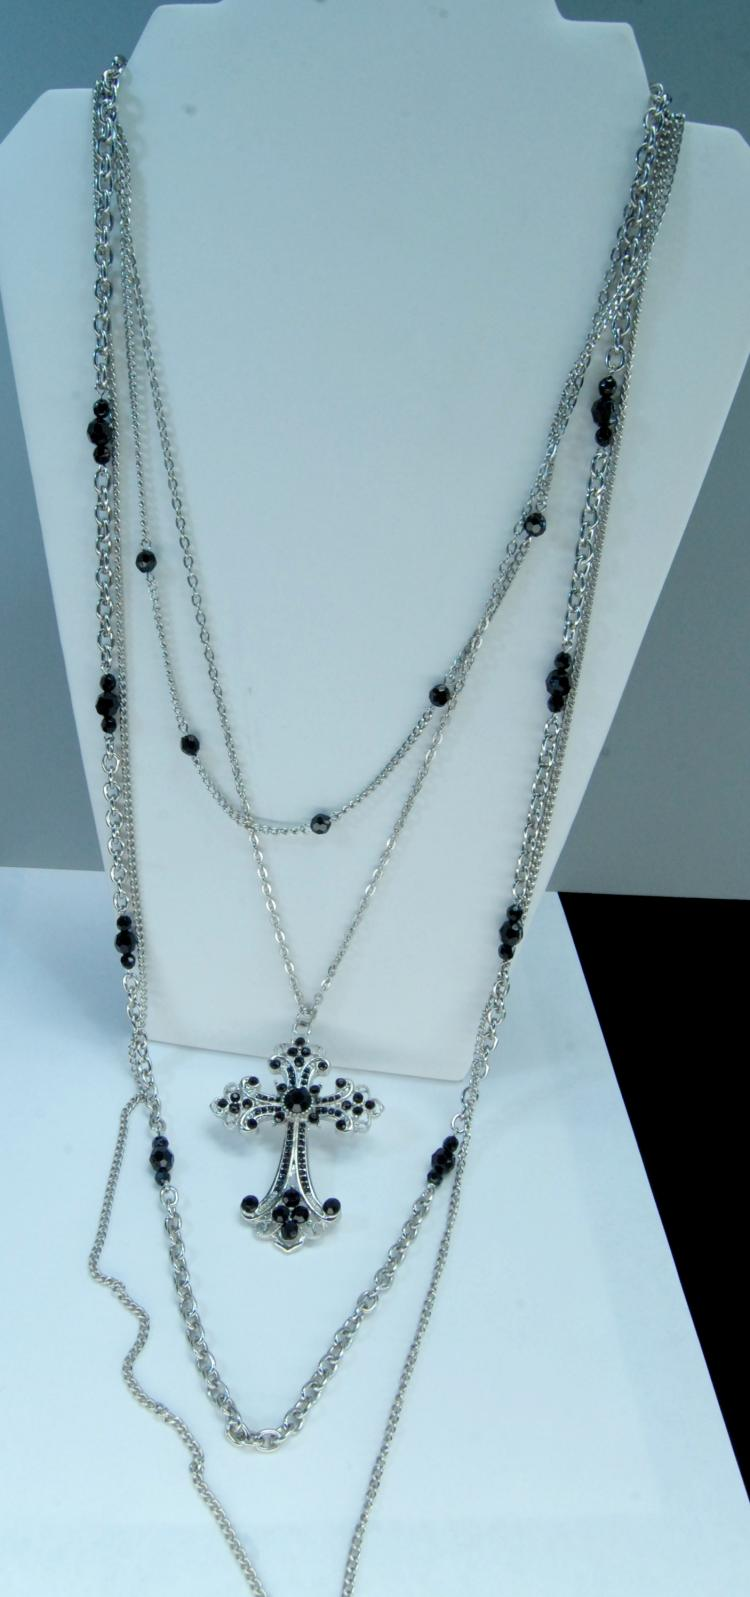 Lot 2: Multi-Strand Chain W/ Cross Necklace